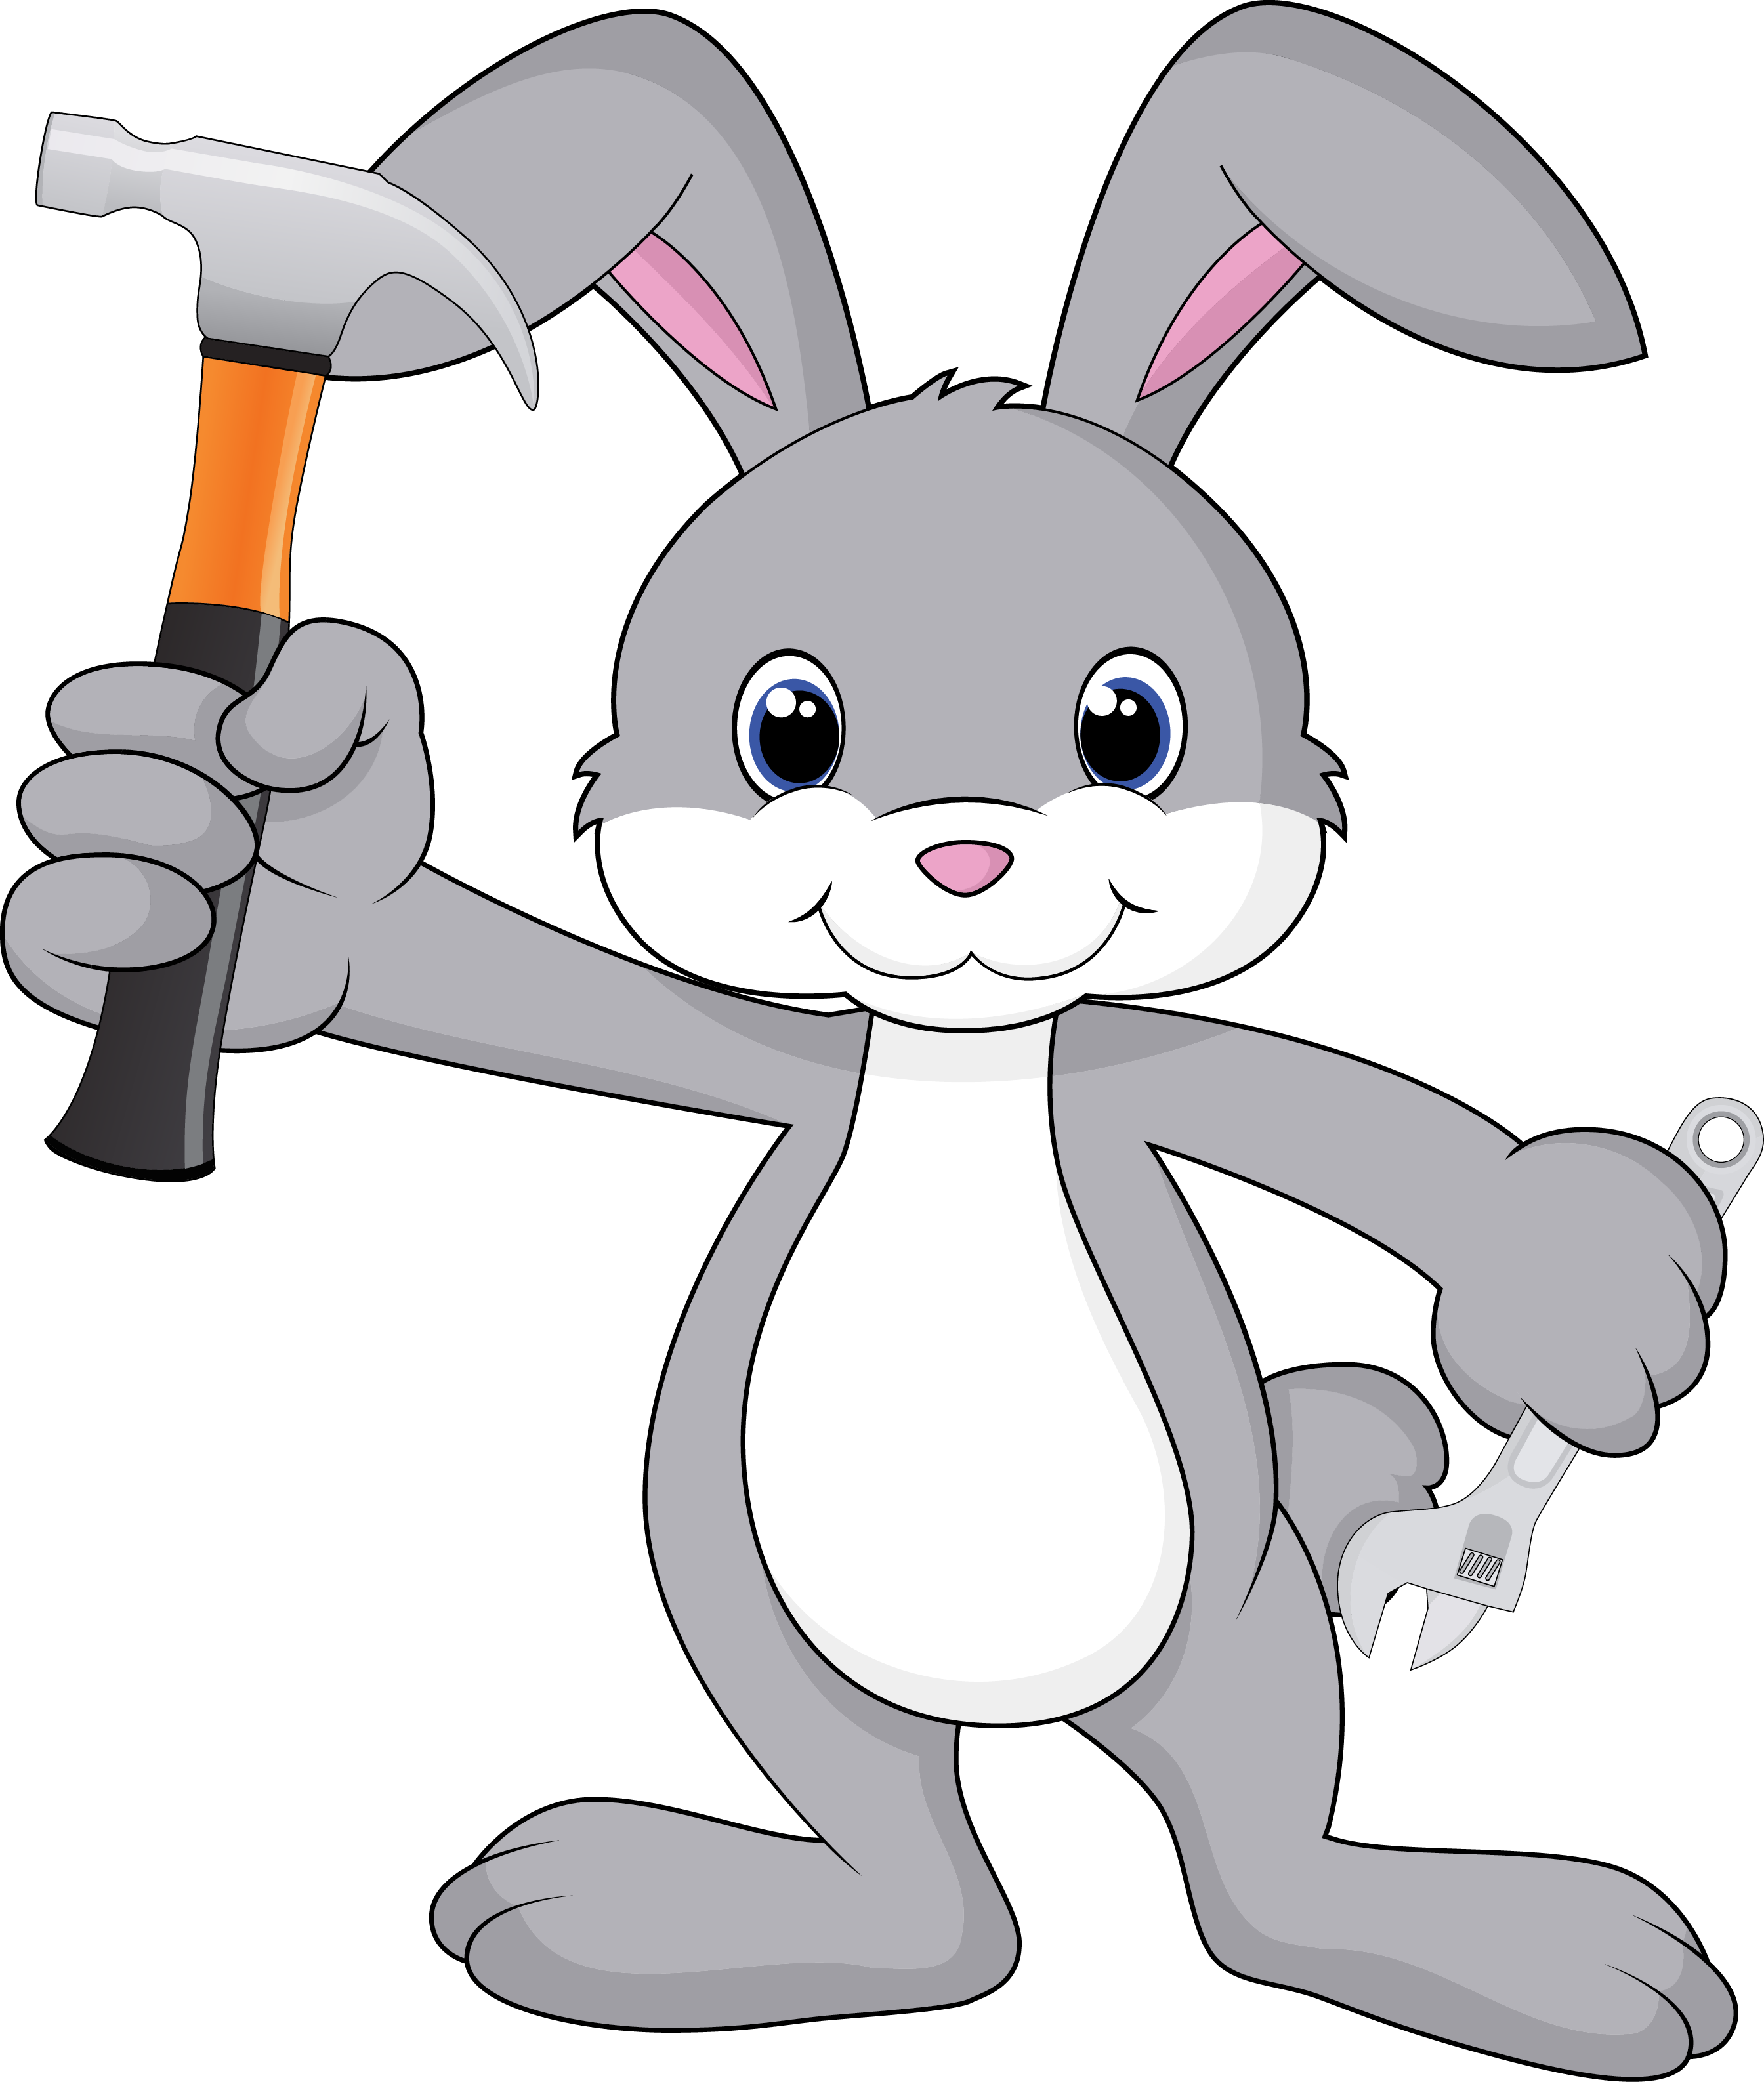 Clipart hammer hammer wrench. Cartoon bunny with and